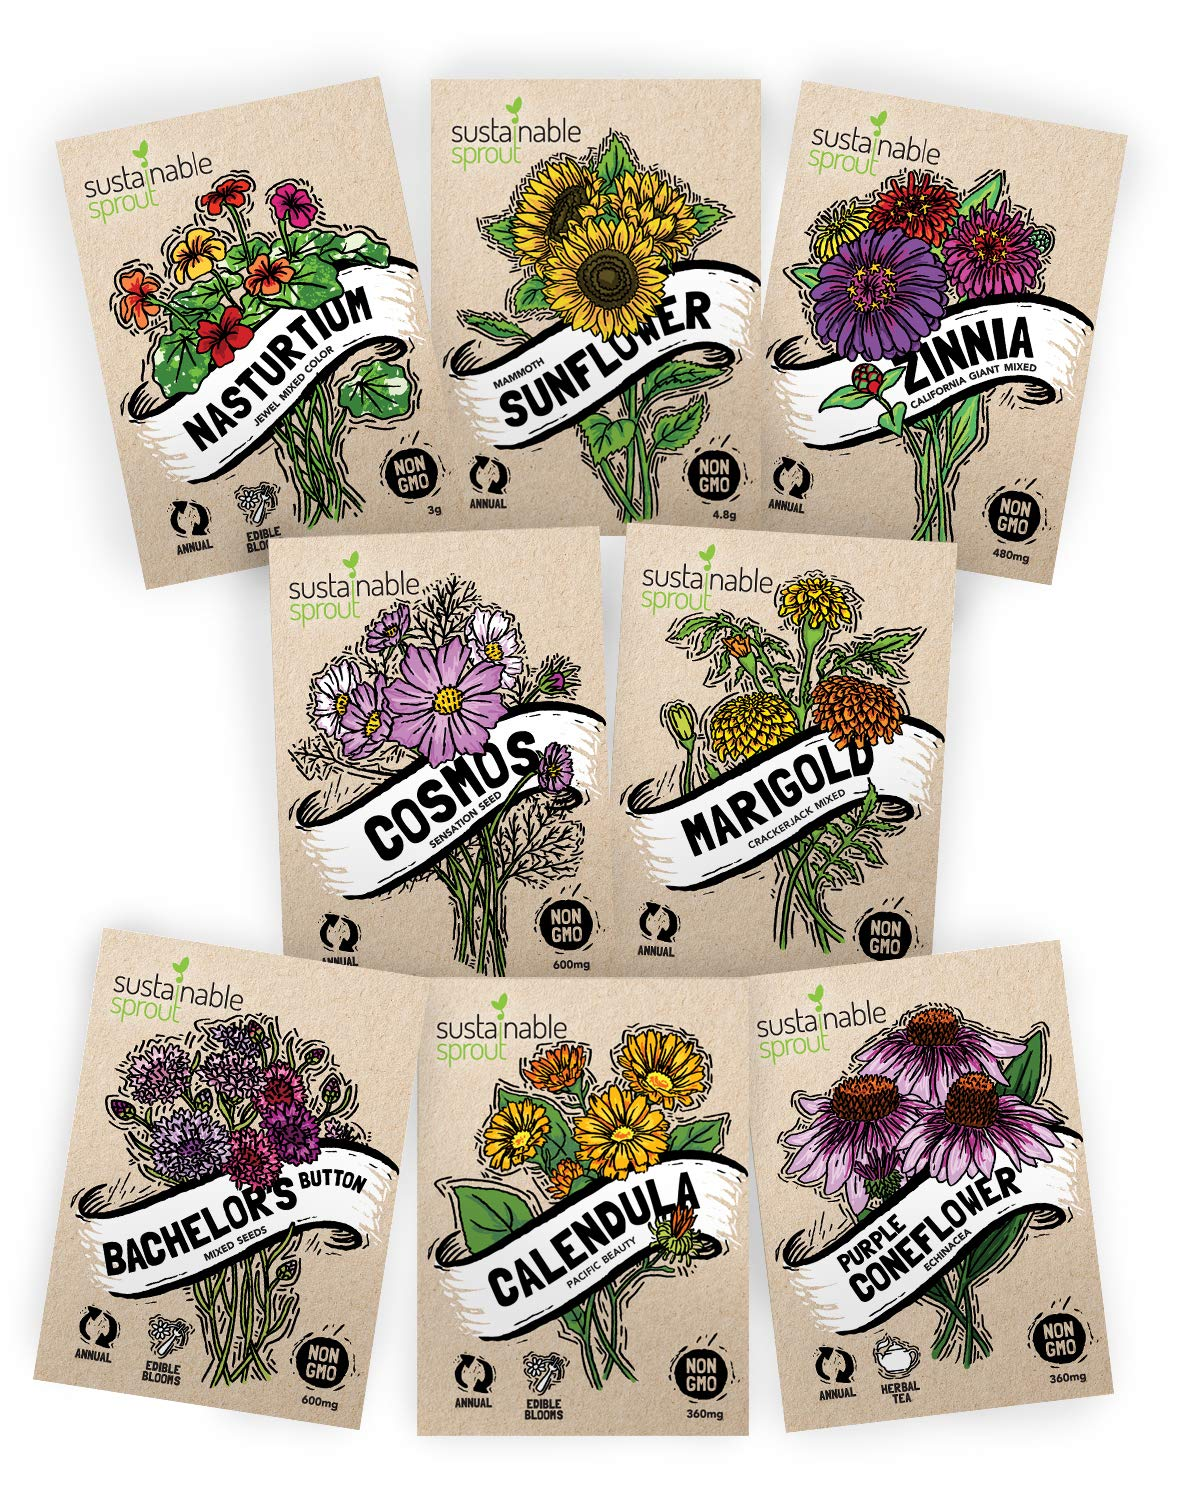 Flower Seeds Variety Pack - 100% Non GMO - Zinnia, Cosmos, Sunflower, Bachelor Button, Calendula, Nasturtium, Marigold, Coneflower for Planting in Your Garden by Sustainable Sprout